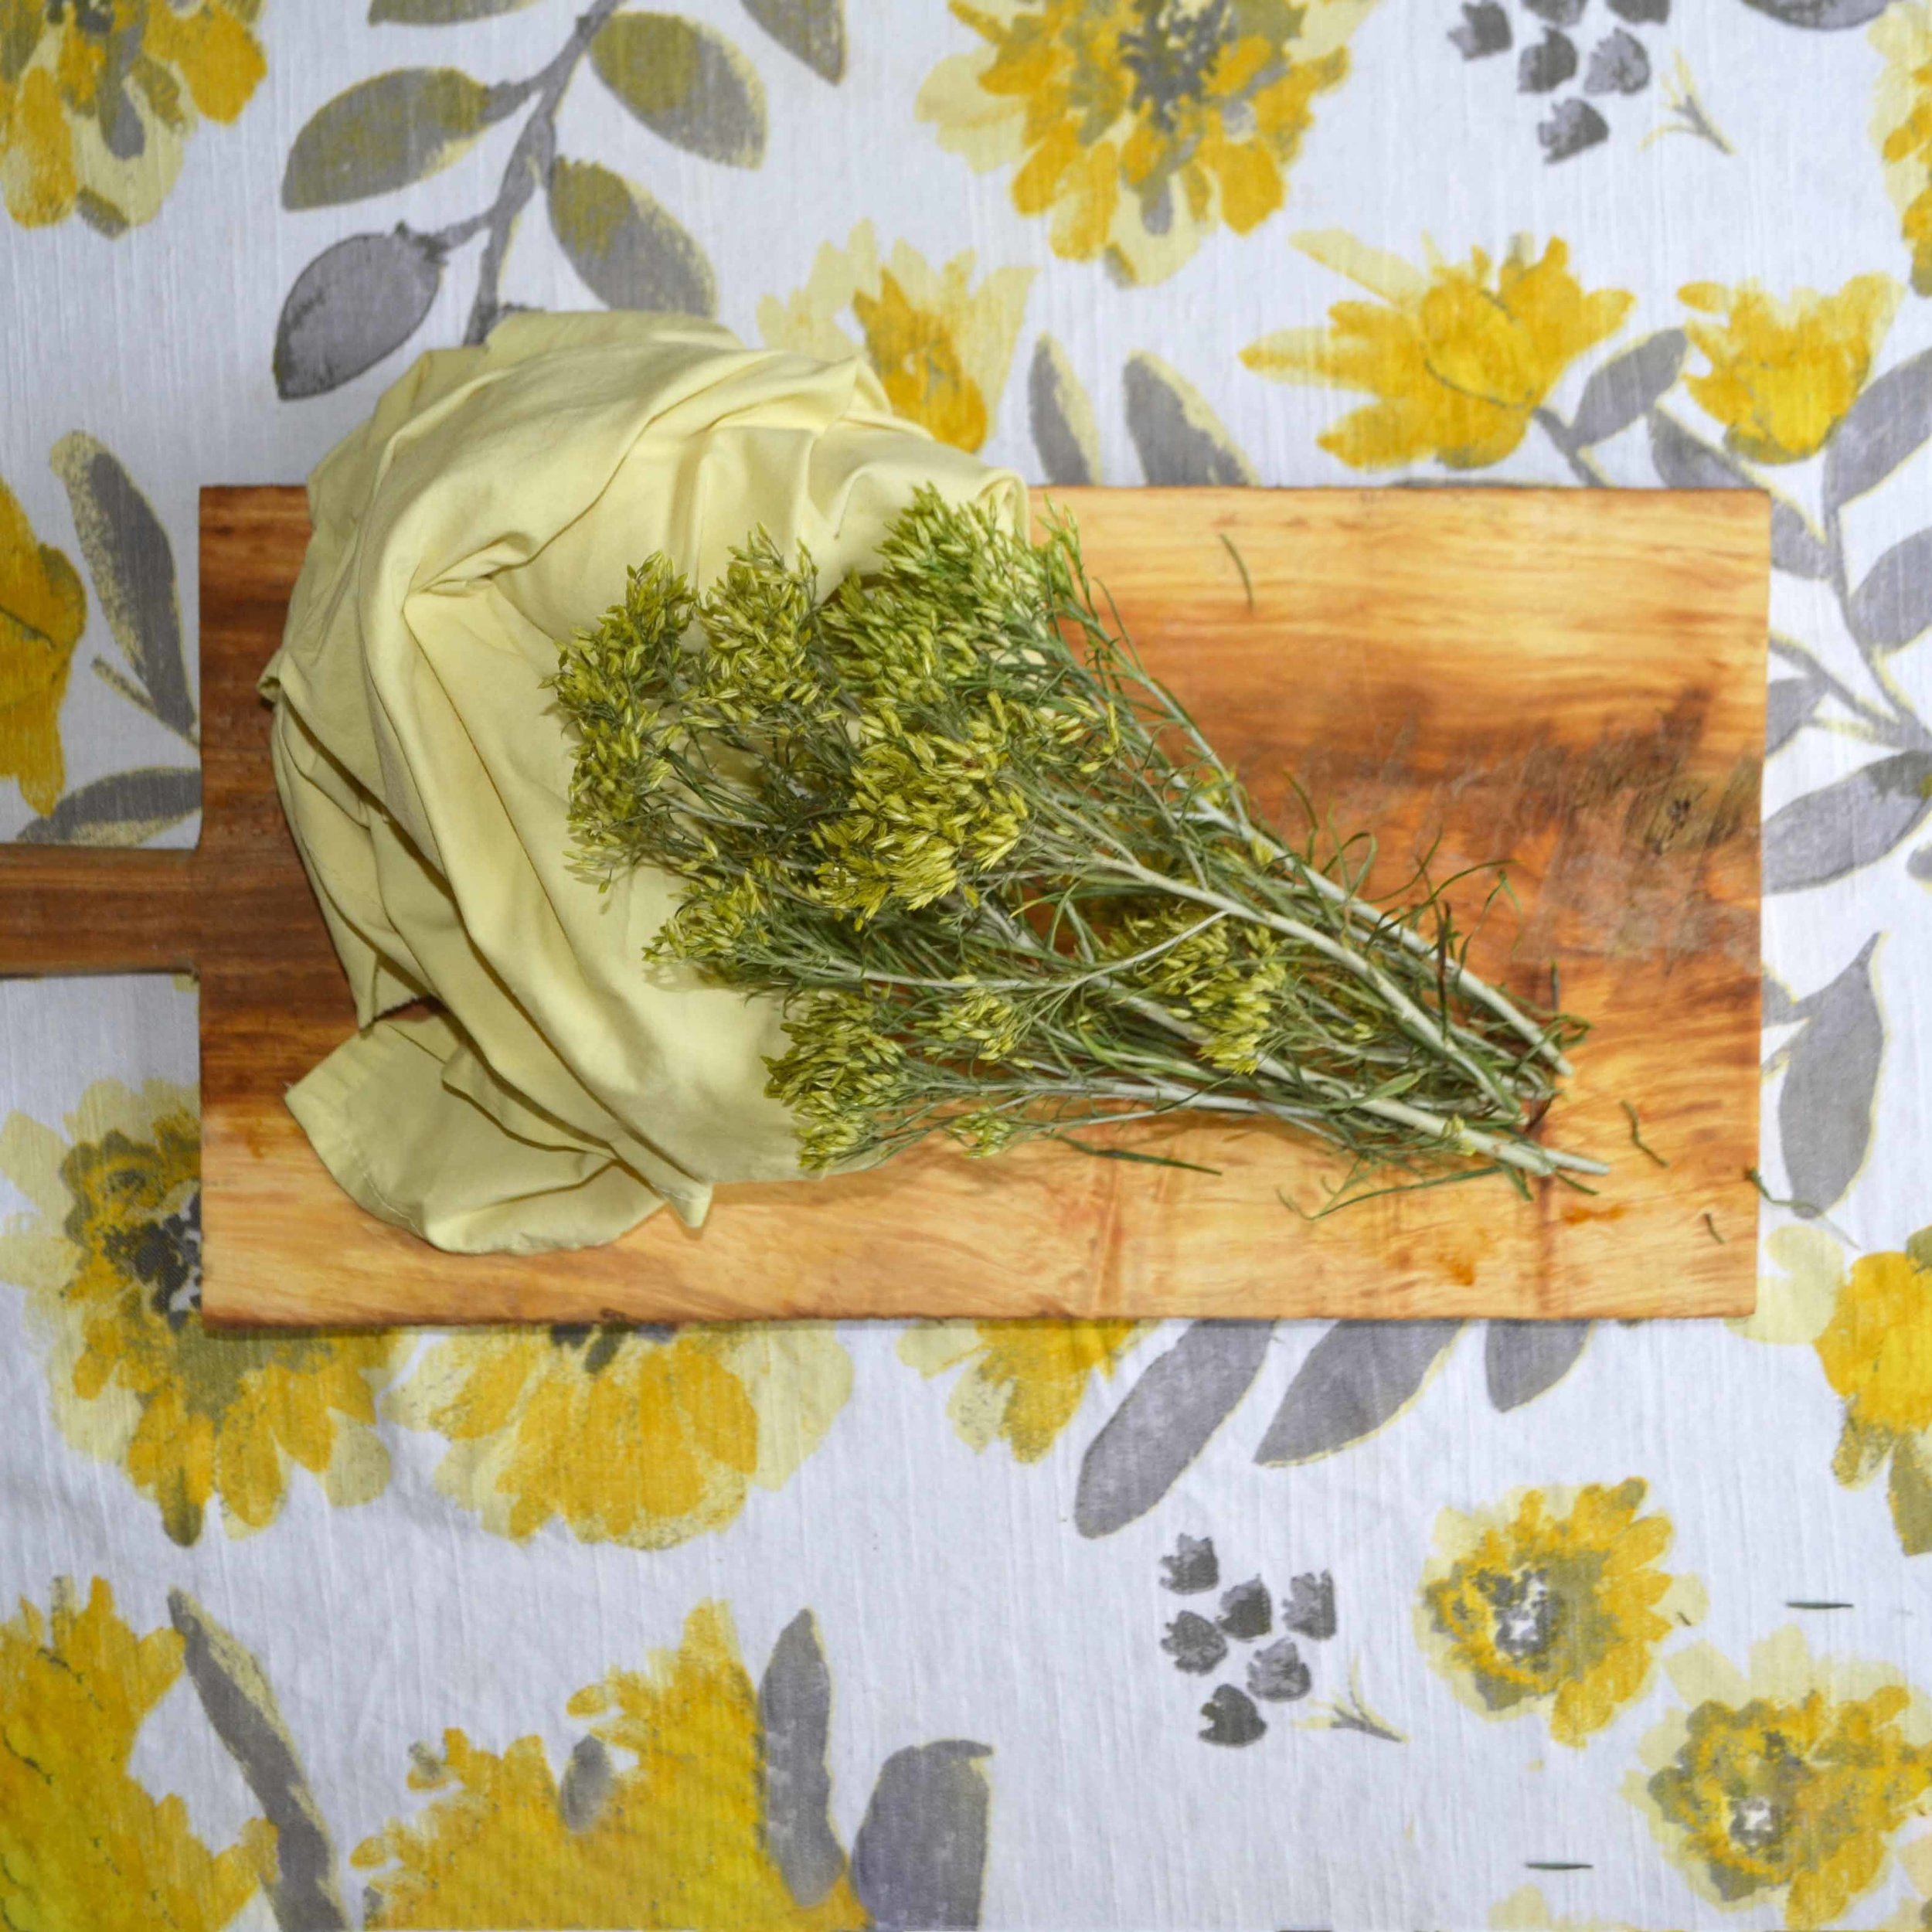 Natural Dyeing - Fabric dyed with rabbitbrush foraged from Colorado natural areas.